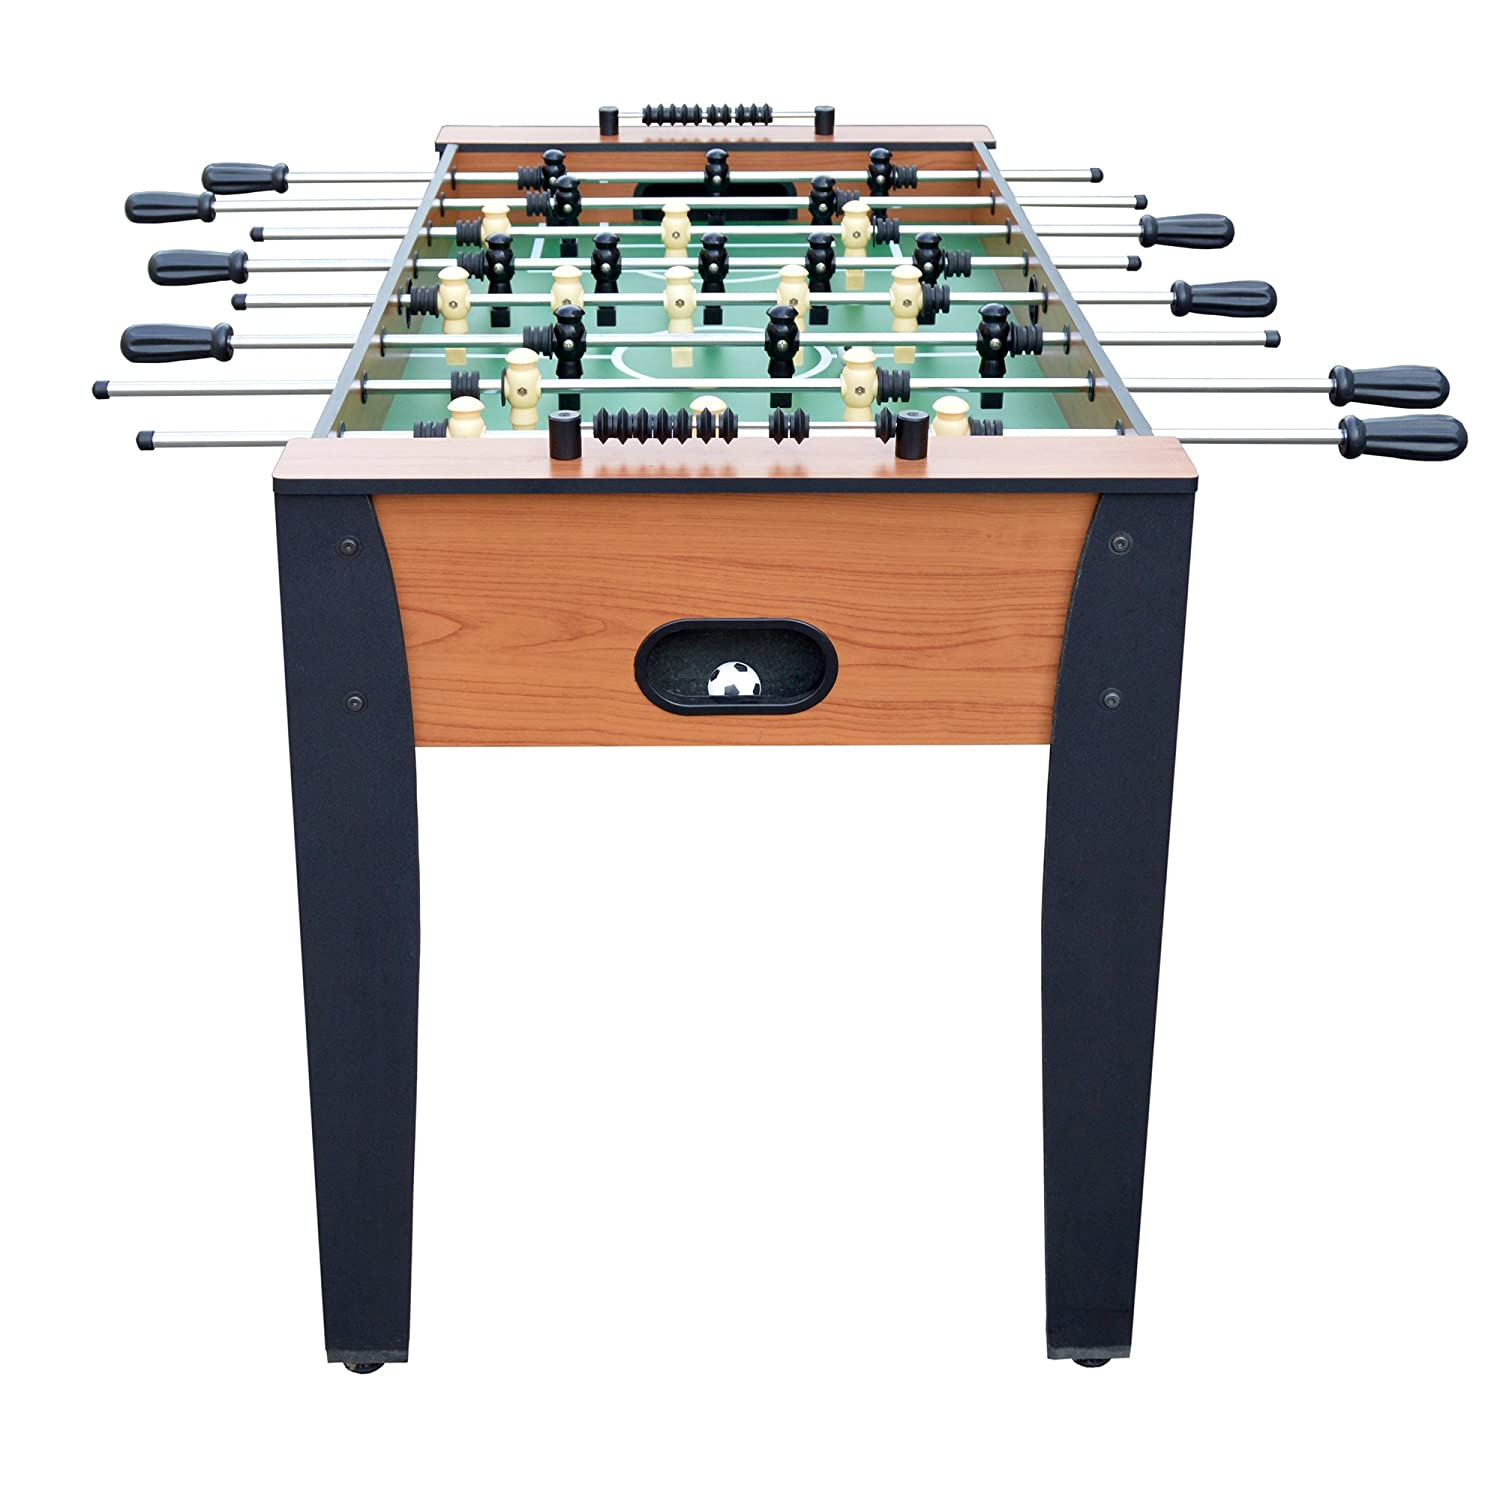 Wonderful Amazon.com : Hathaway 54 Inch Hurricane Foosball Table For Family Game  Rooms With Light Cherry Finish, Analog Scoring And Free Accessories :  Sports U0026 ...